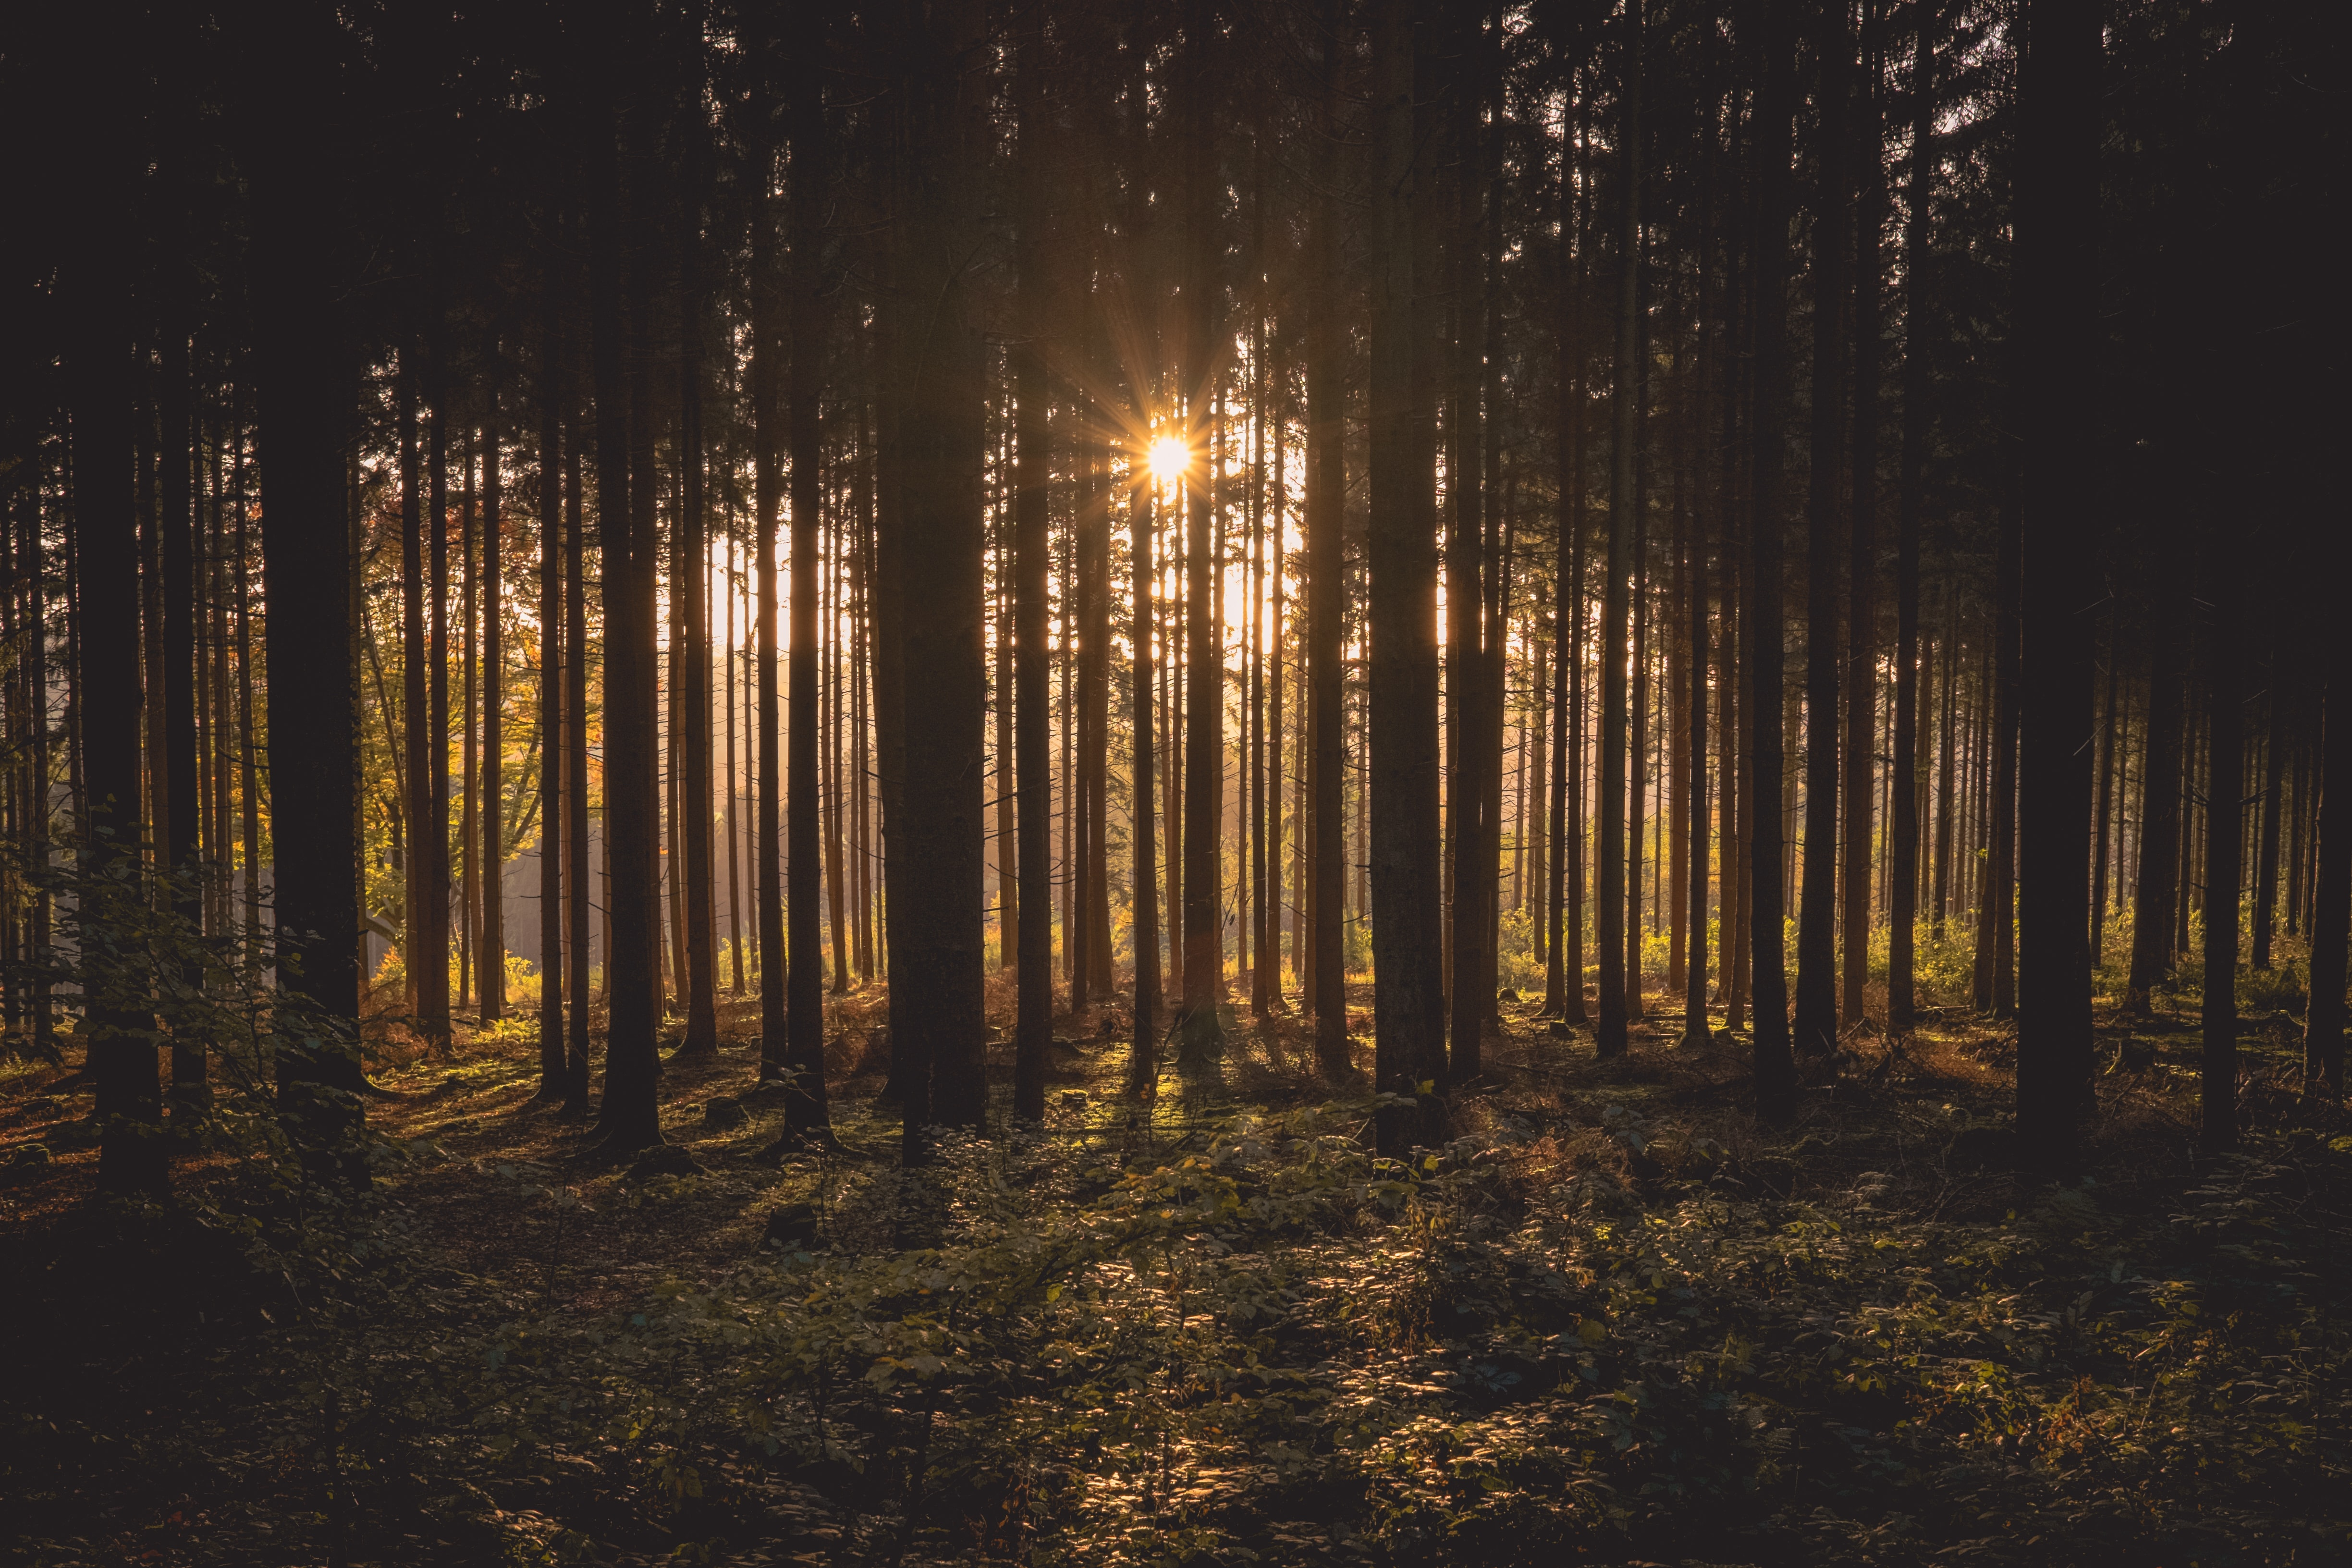 Setting sun shining through the tall trees in a thick forest